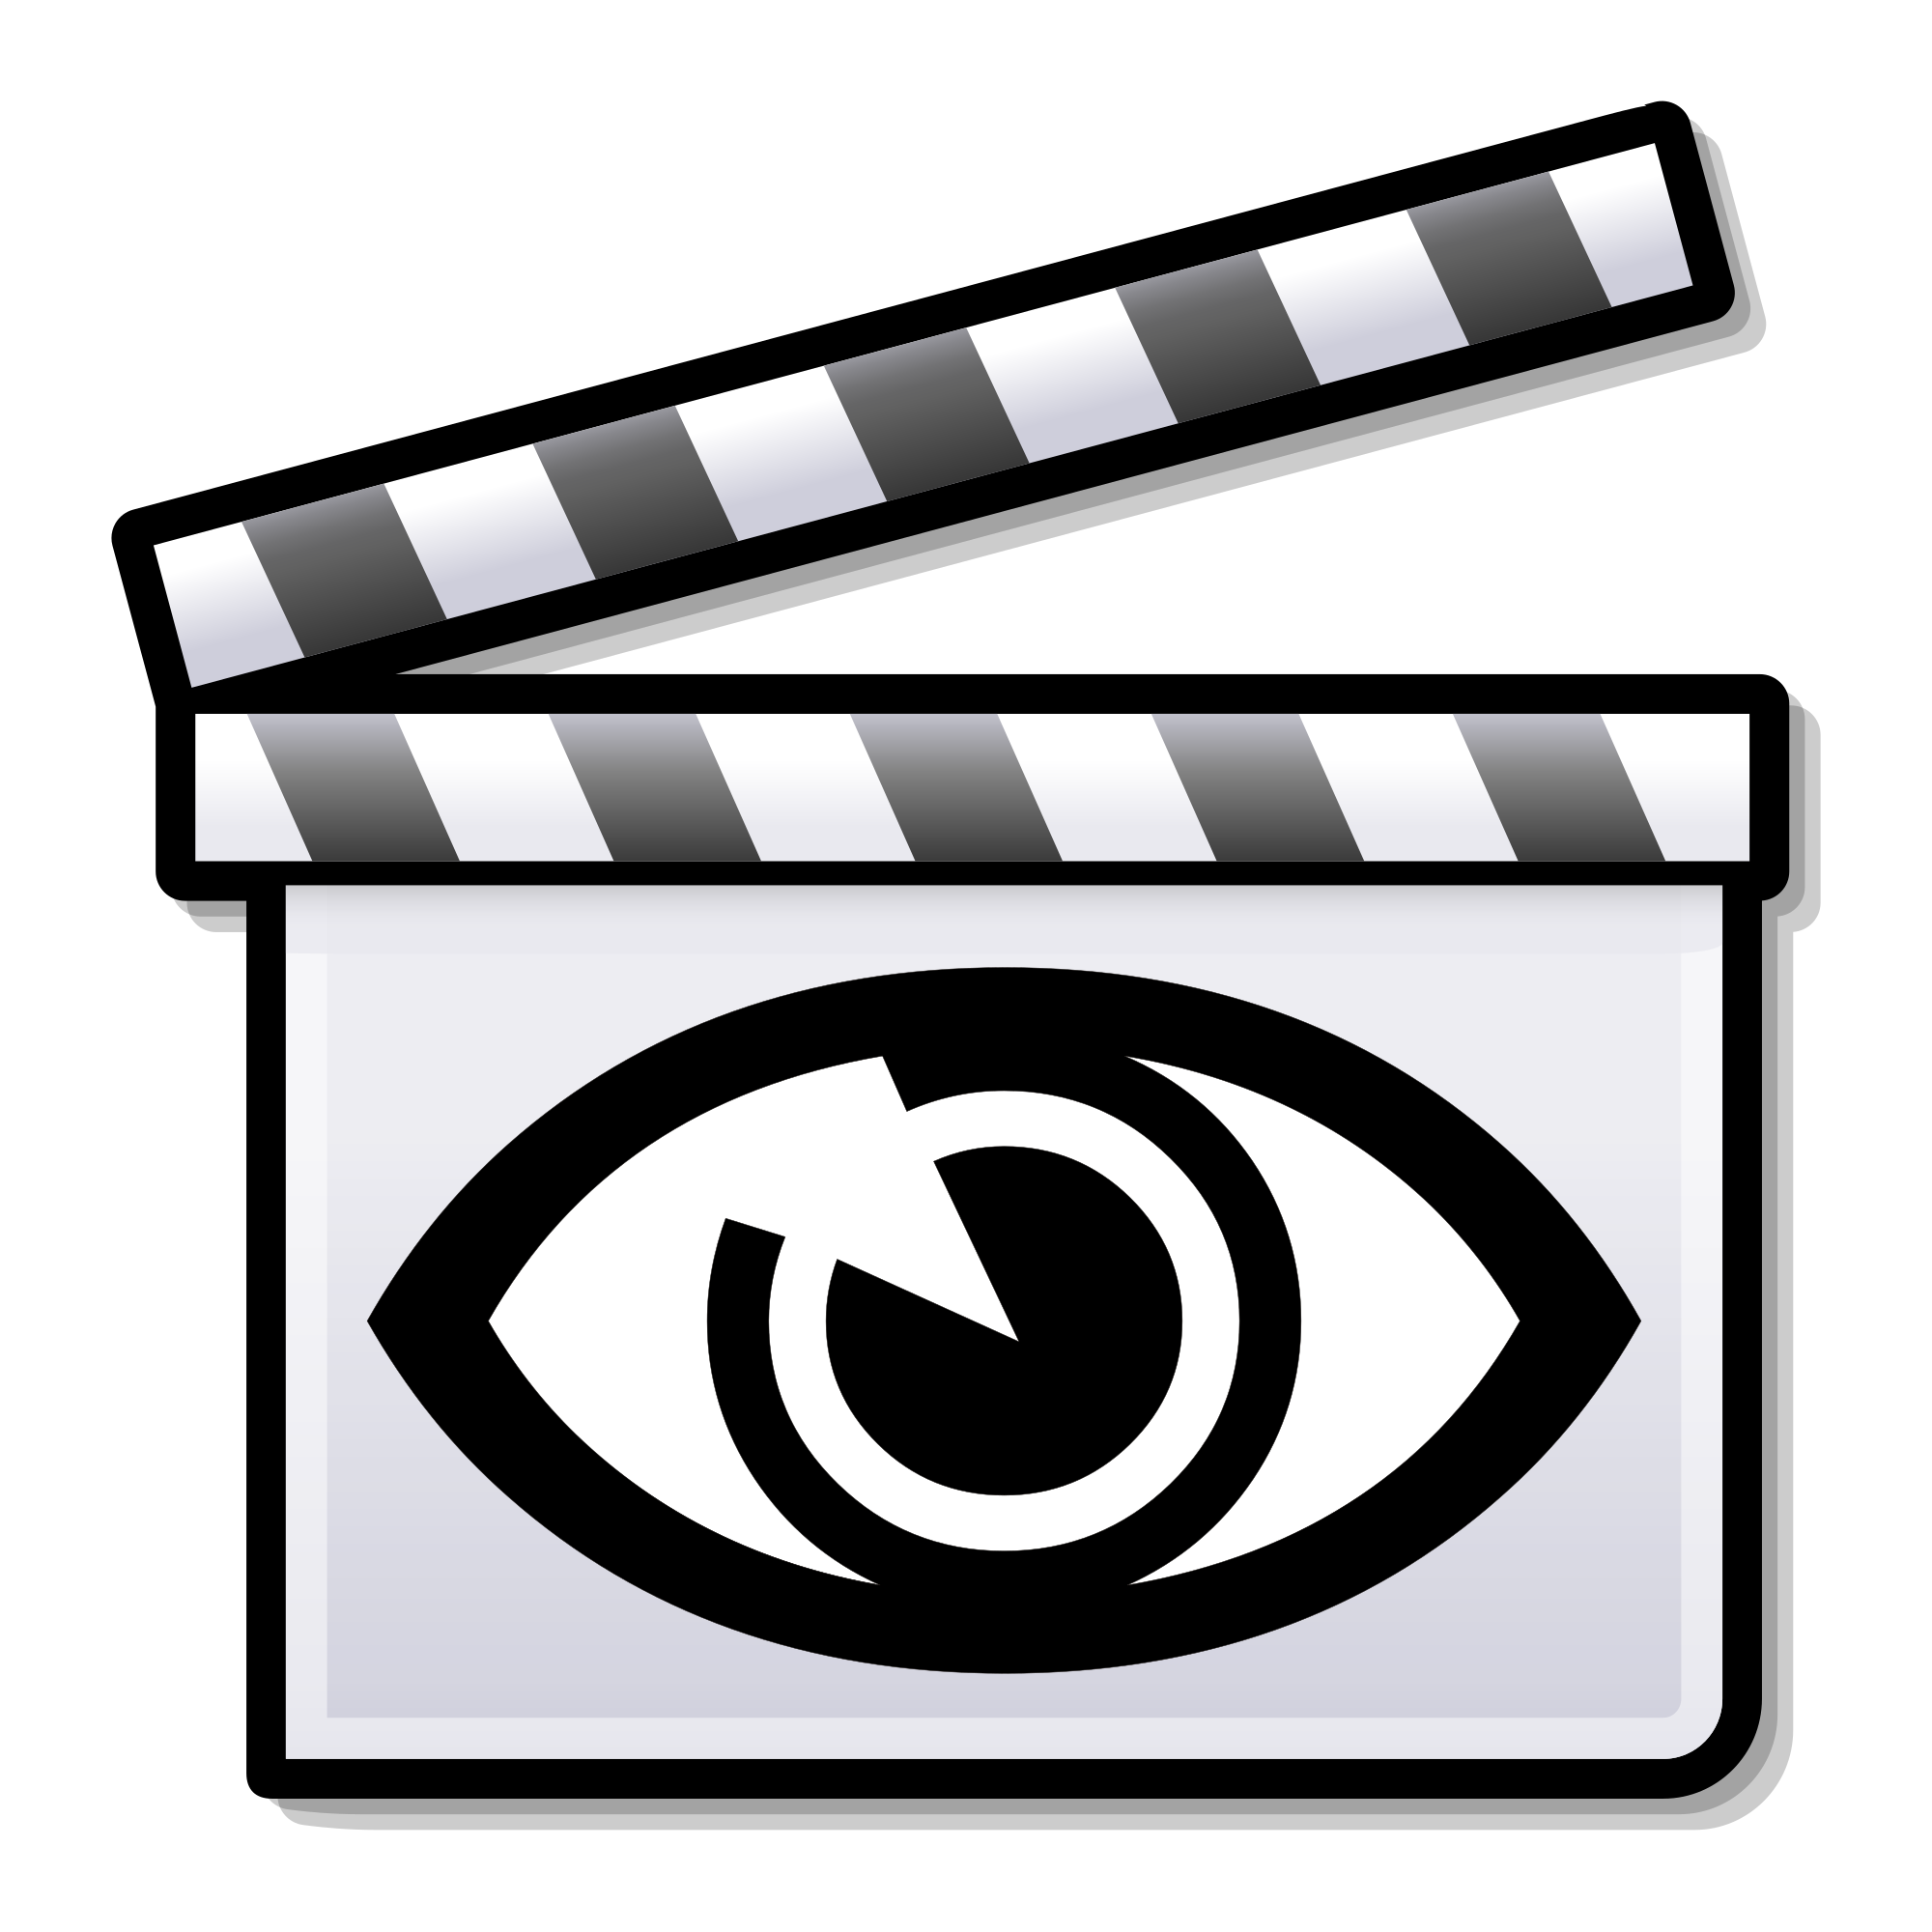 Clip art library file. Film clipart documentary